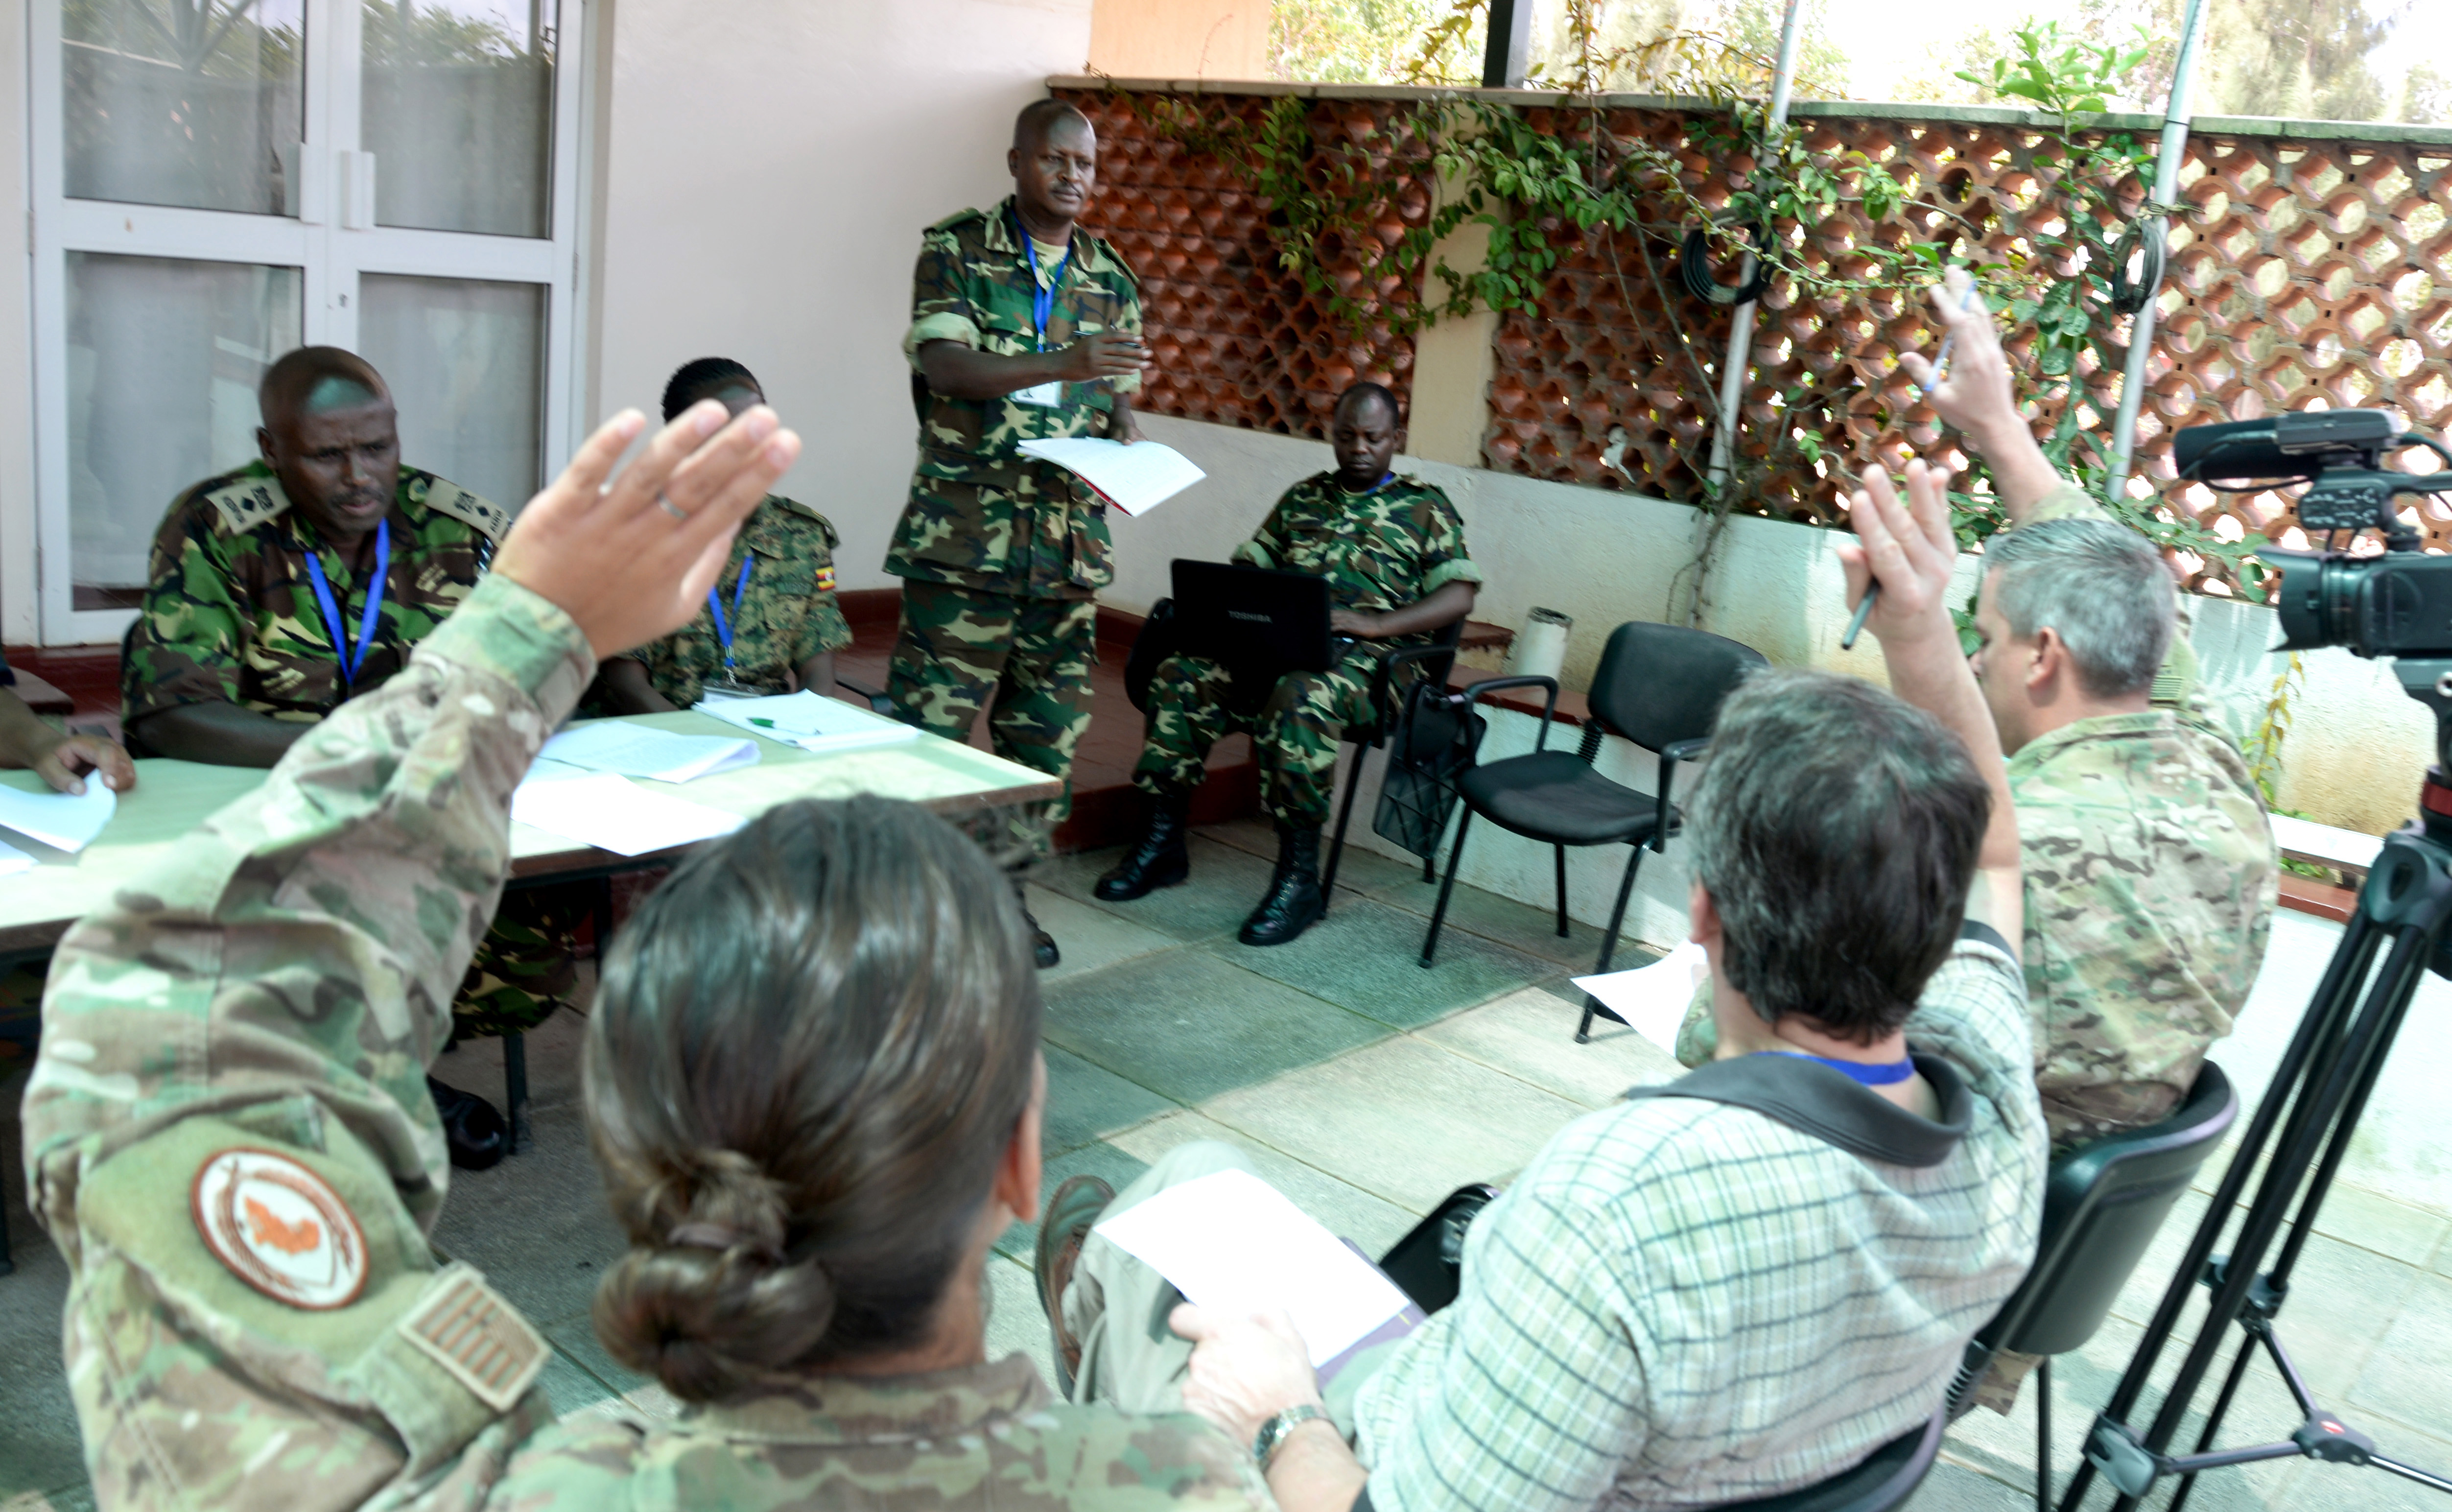 U.S. military and civilian mentors role play as members of the media and ask questions at a simulated press conference March 3, 2016, during an exercise to complete an AMISOM staff officers course in Nairobi, Kenya. The practice press conference tested the public information officers' ability to prepare the conference, media and staff. (U.S. Air Force photo by Staff Sgt. Kate Thornton)